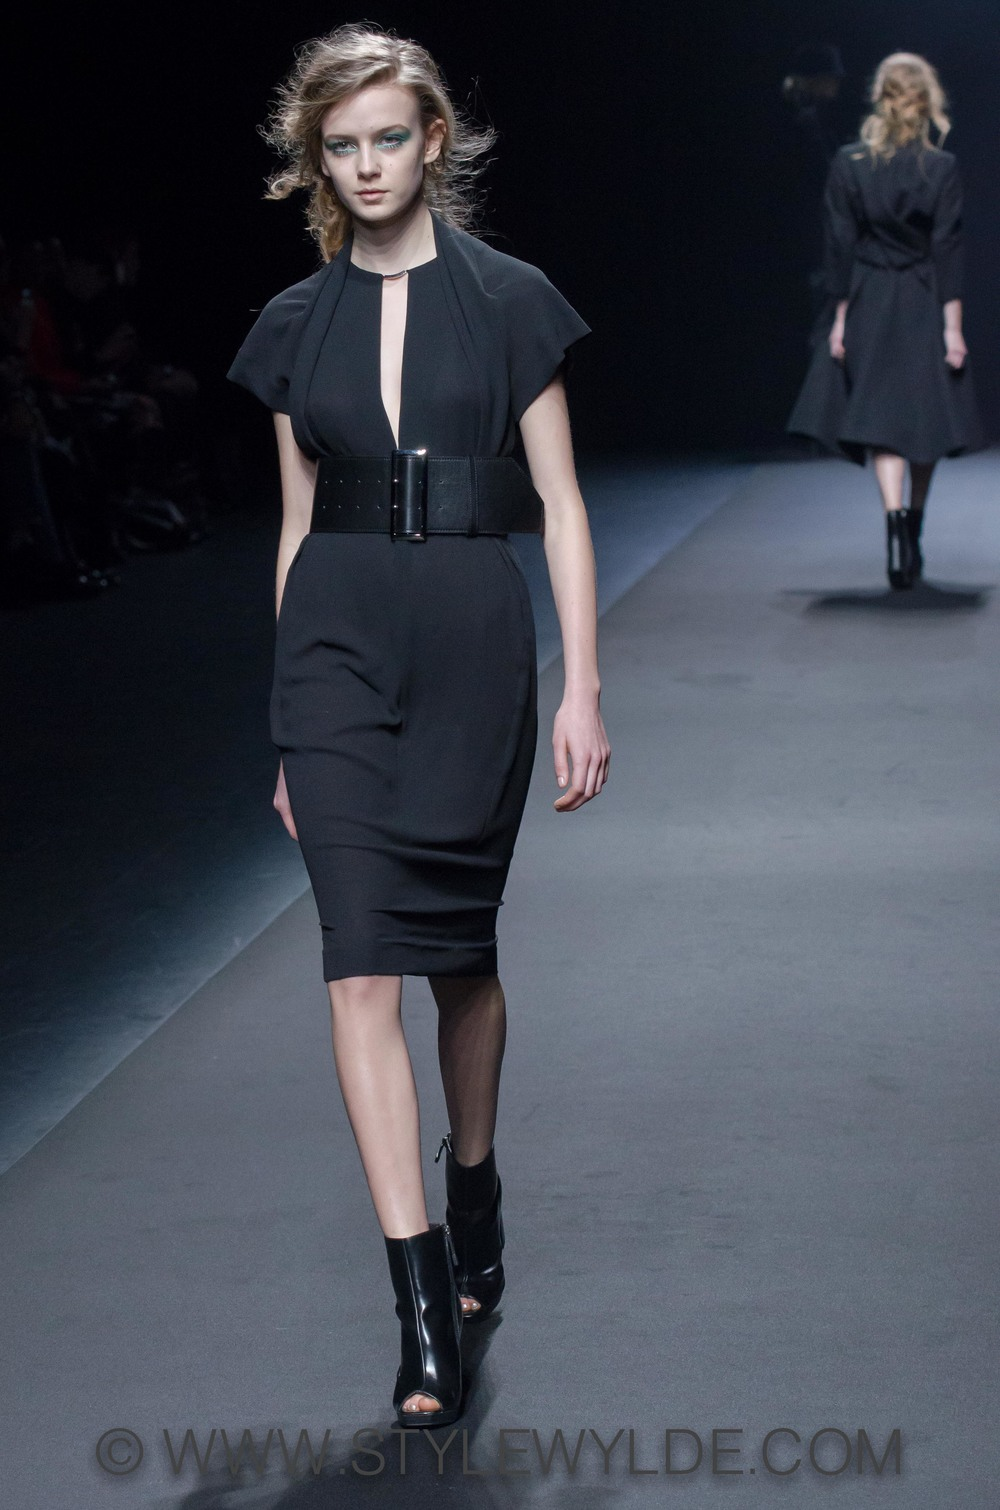 stylewylde_ADF_AW14_edited (5 of 22).jpg